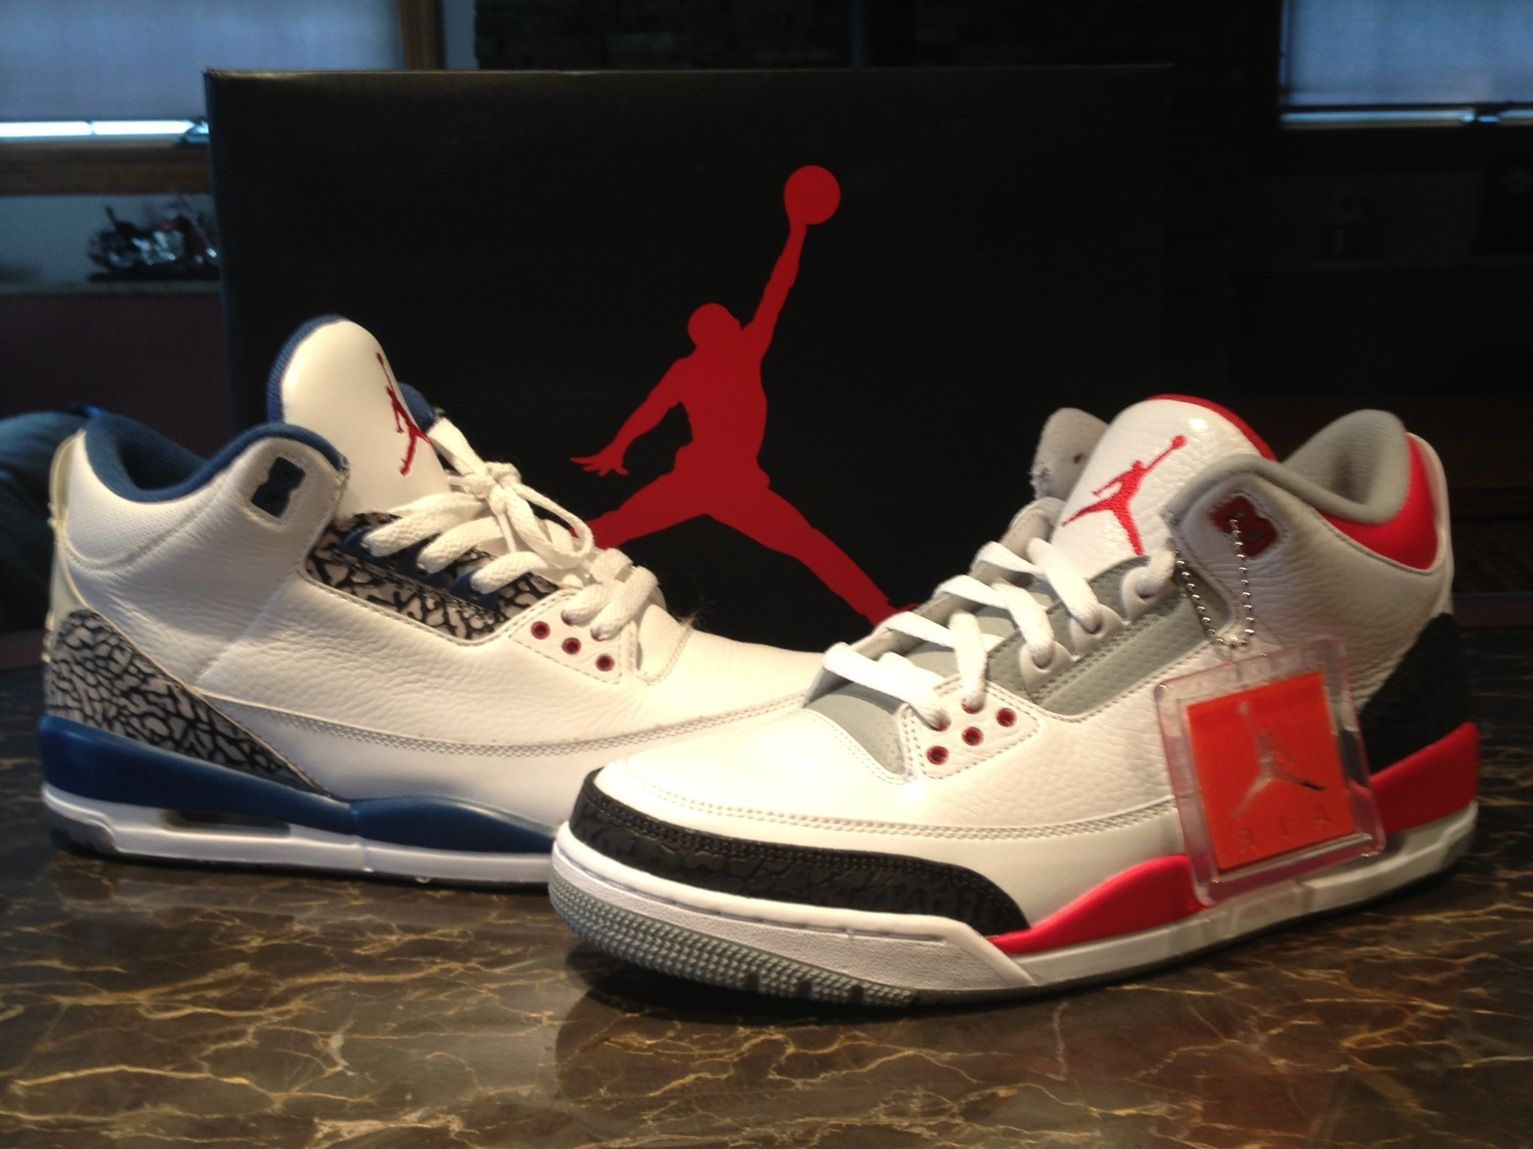 competitive price 3baf7 0caf3 09 True Blue 3s and Fire Red 3s | Nice Kicks